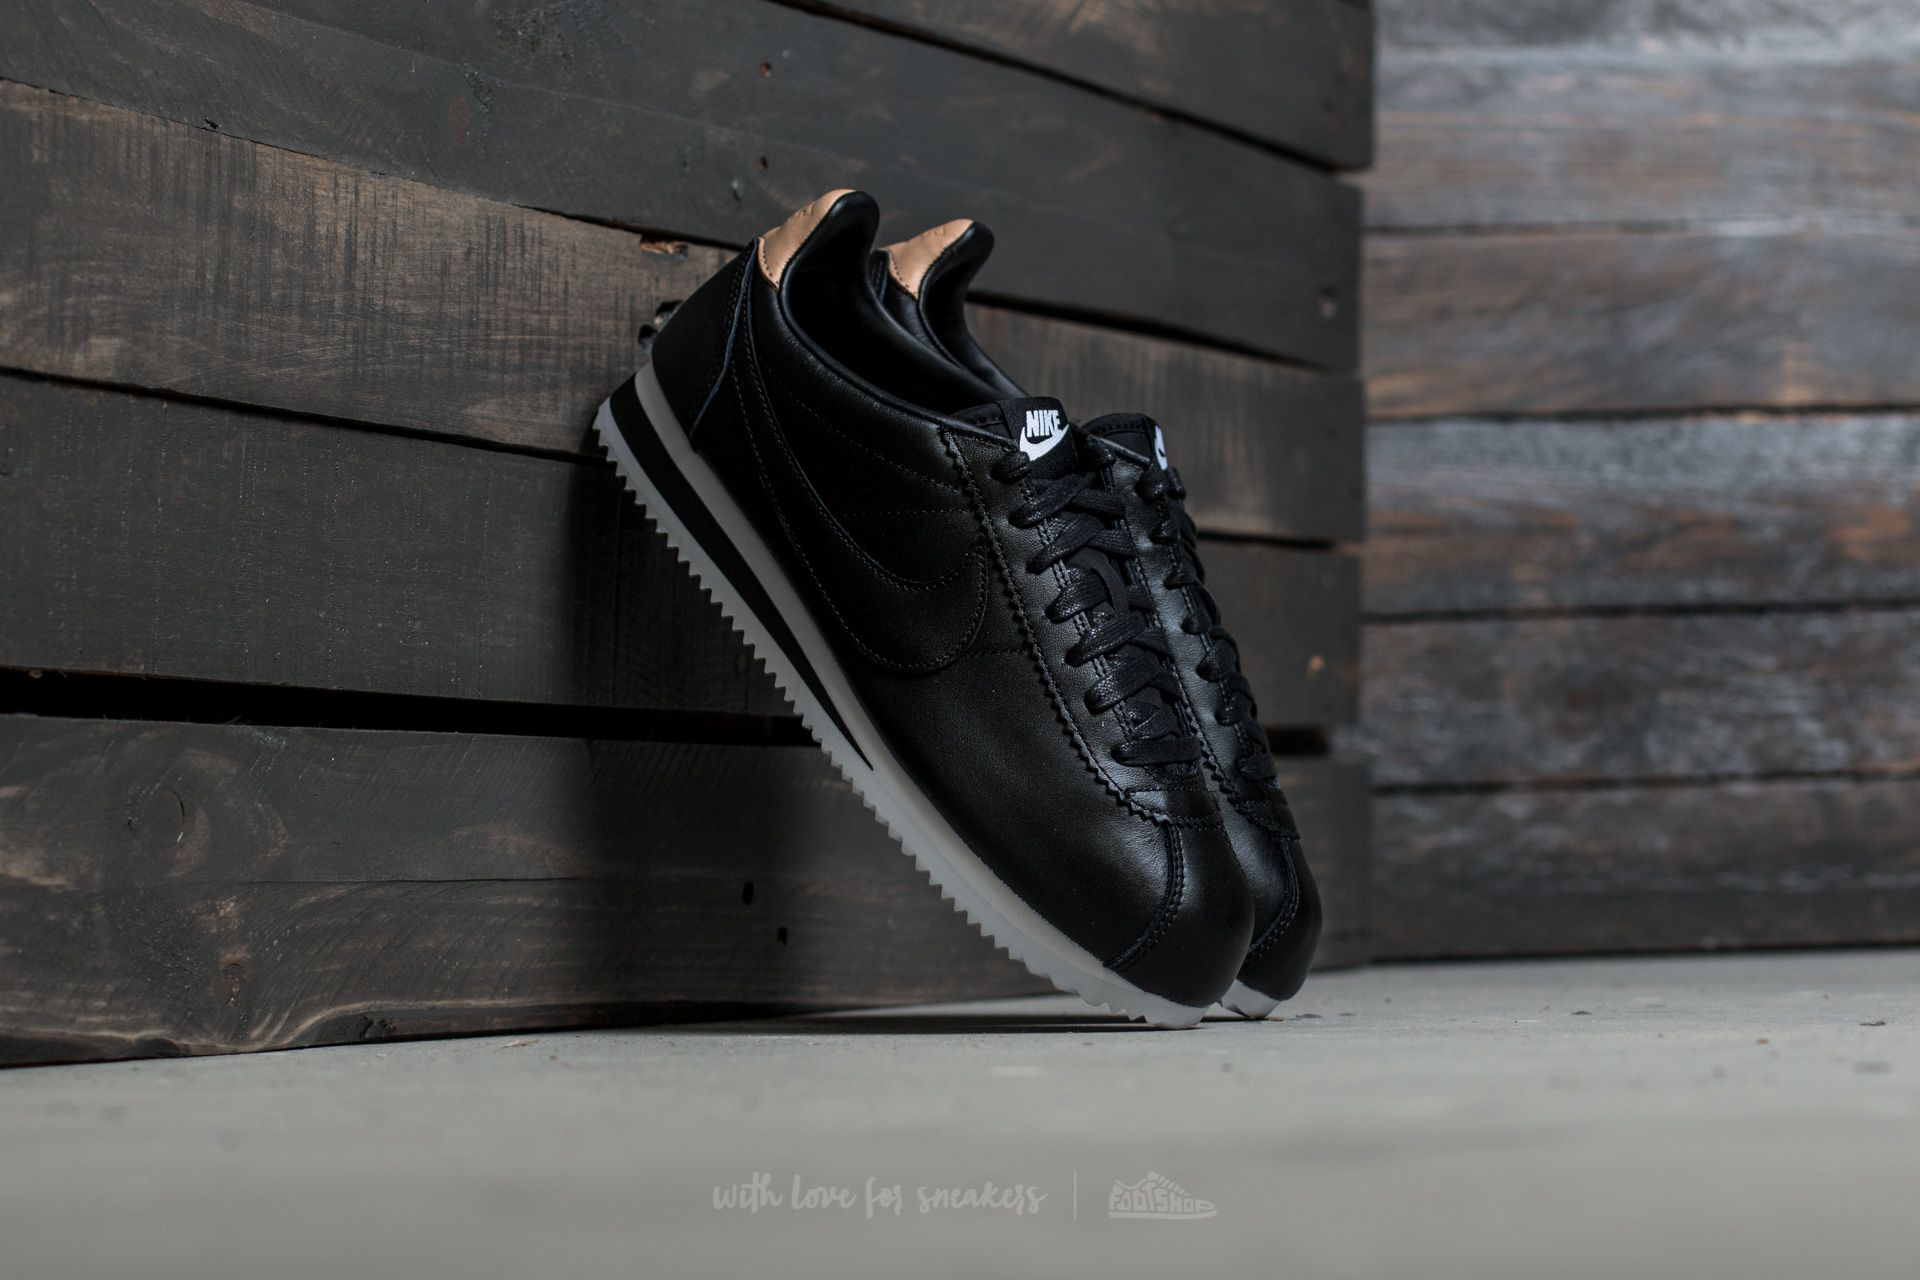 8f729993d82 Nike Classic Cortez Leather SE Black  Black-White-Vachetta Tan ...